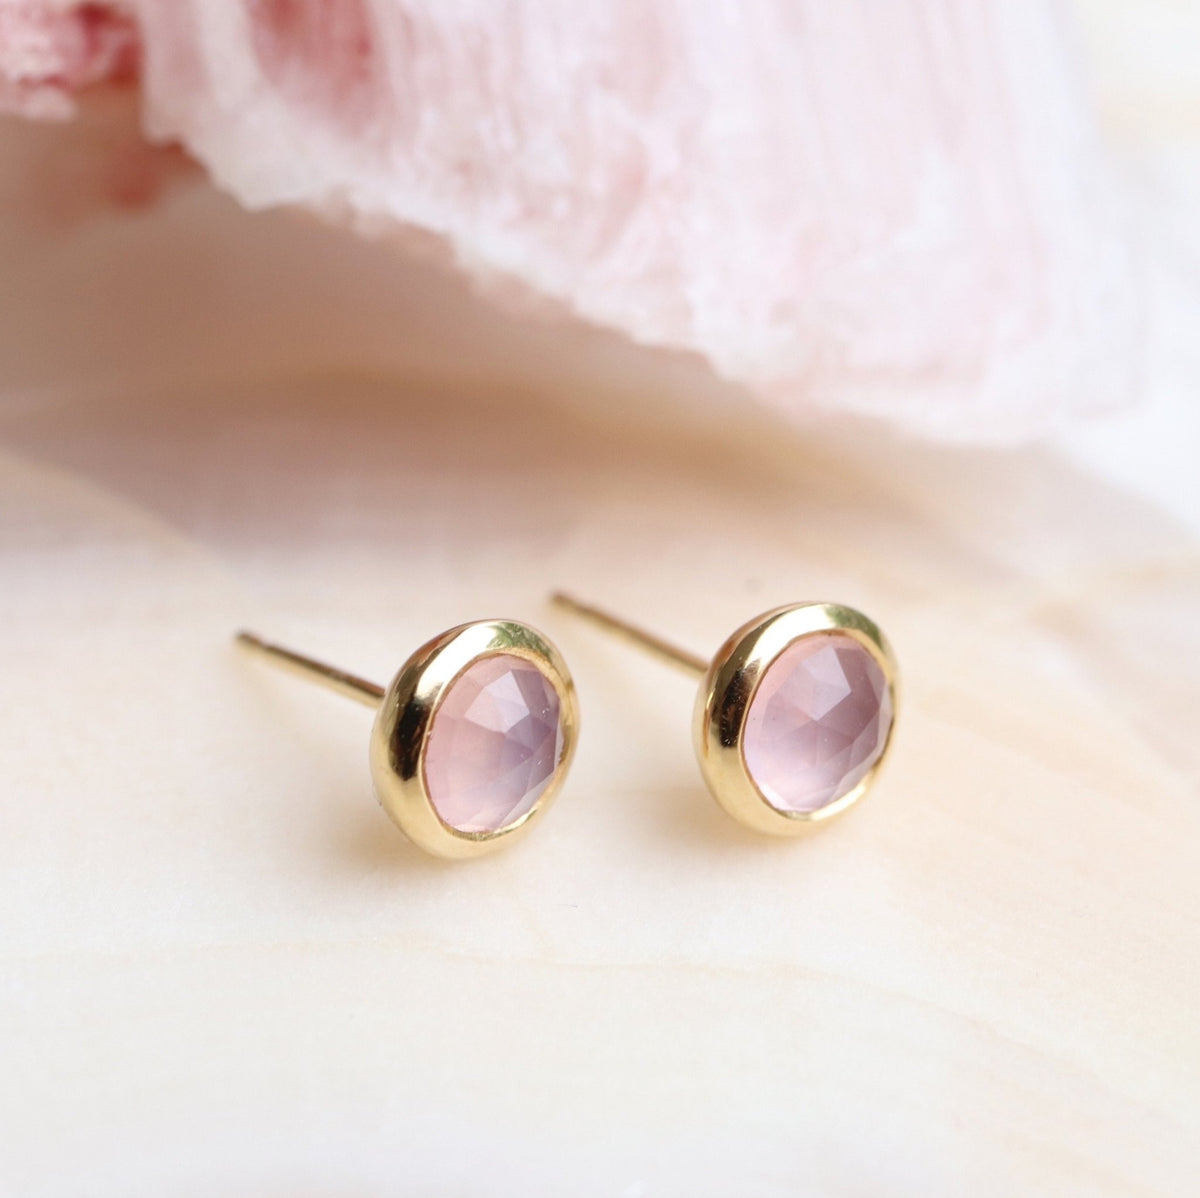 DAINTY LEGACY STUDS - PINK QUARTZ & GOLD - SO PRETTY CARA COTTER